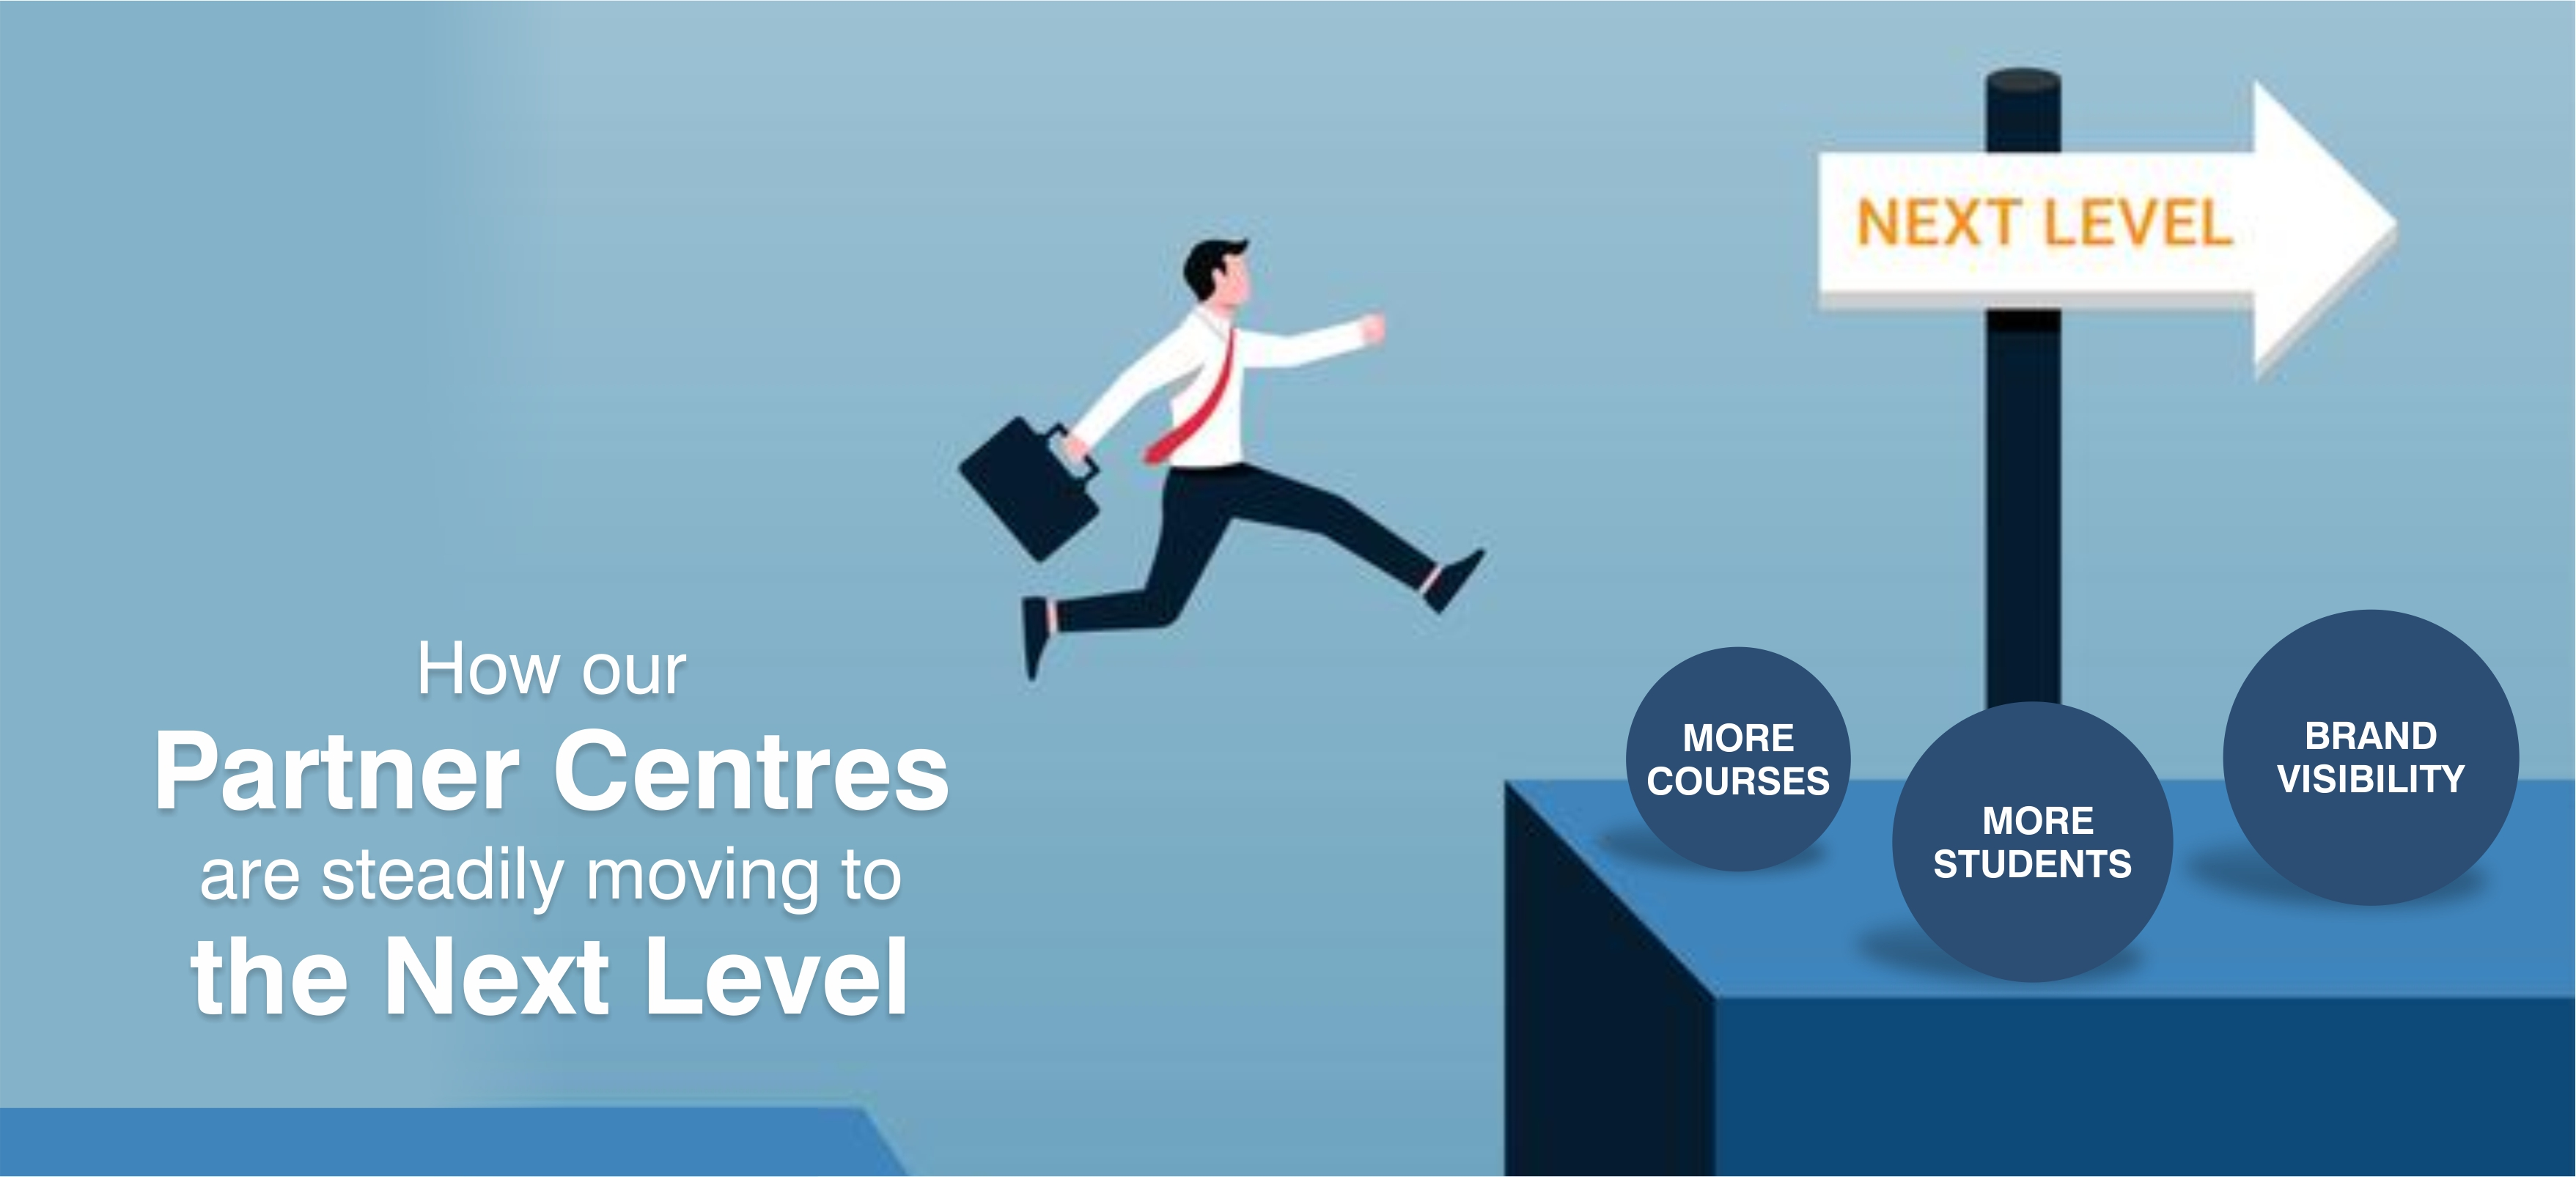 How Our Partner Centres Are Steadily Moving To The Next Level